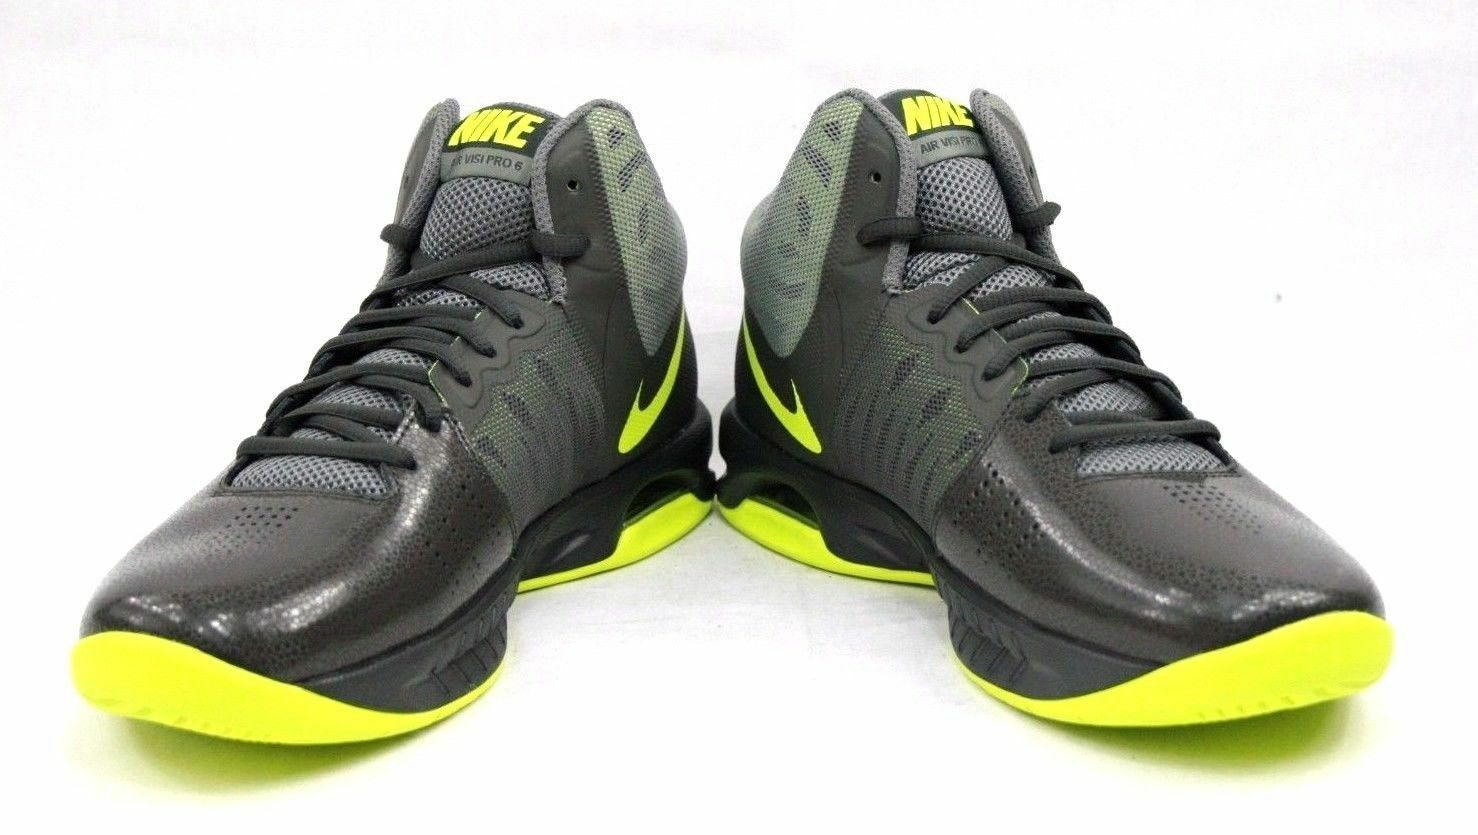 Nike Hommes Air Visi Basketball Pro VI Athletic / Basketball Visi Chaussures 749167-200 SZ 10 045a23